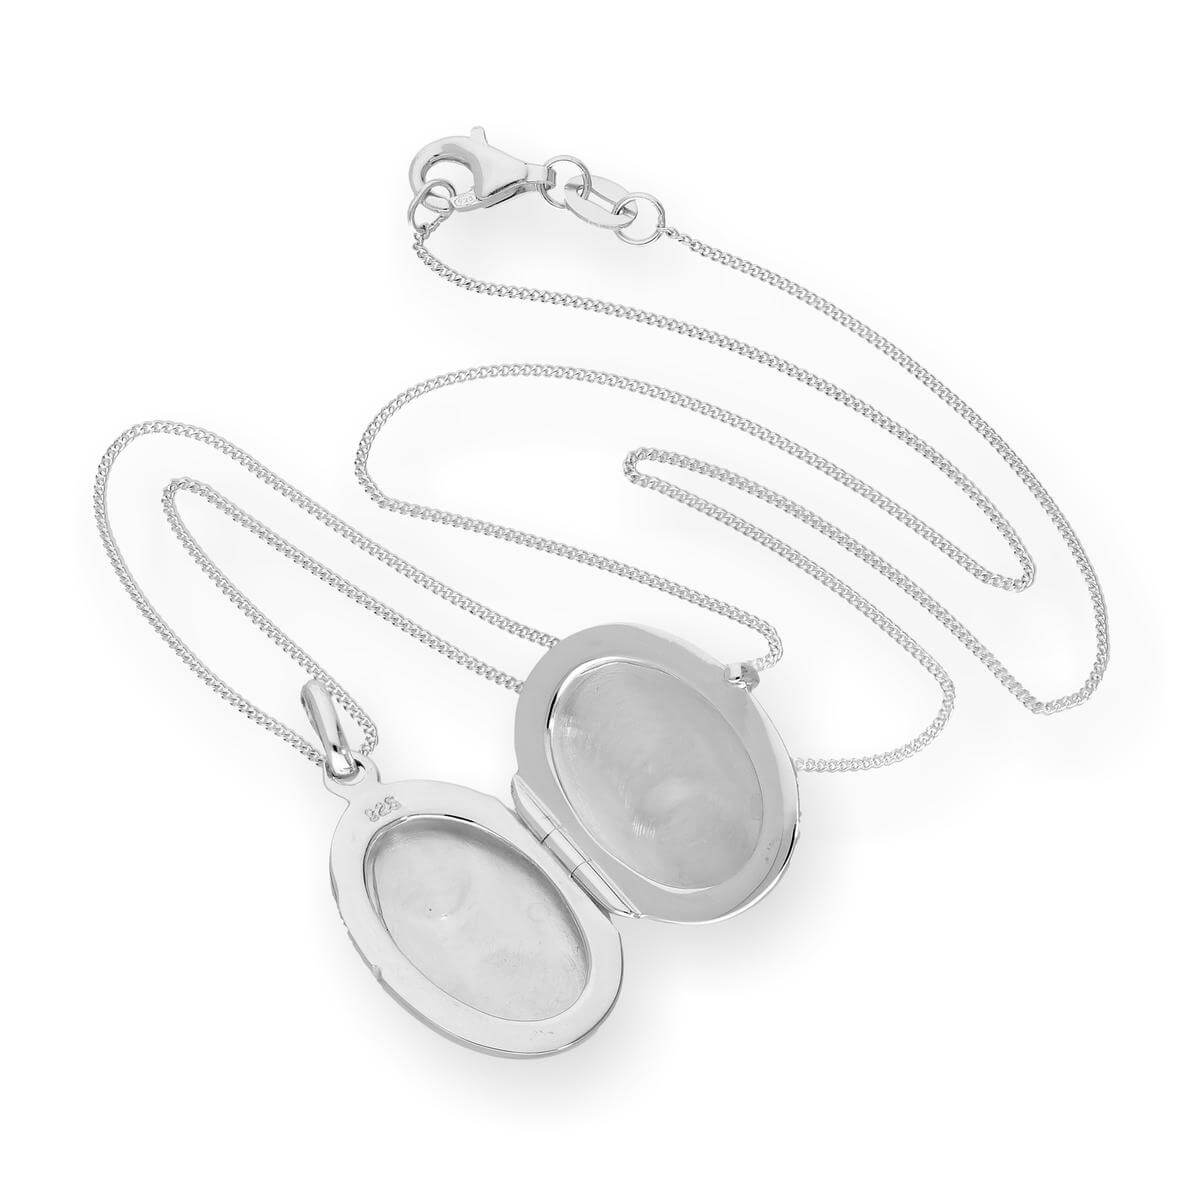 Alterative image for Sterling Silver Engravable Oval Locket on Chain 16 - 22 Inches